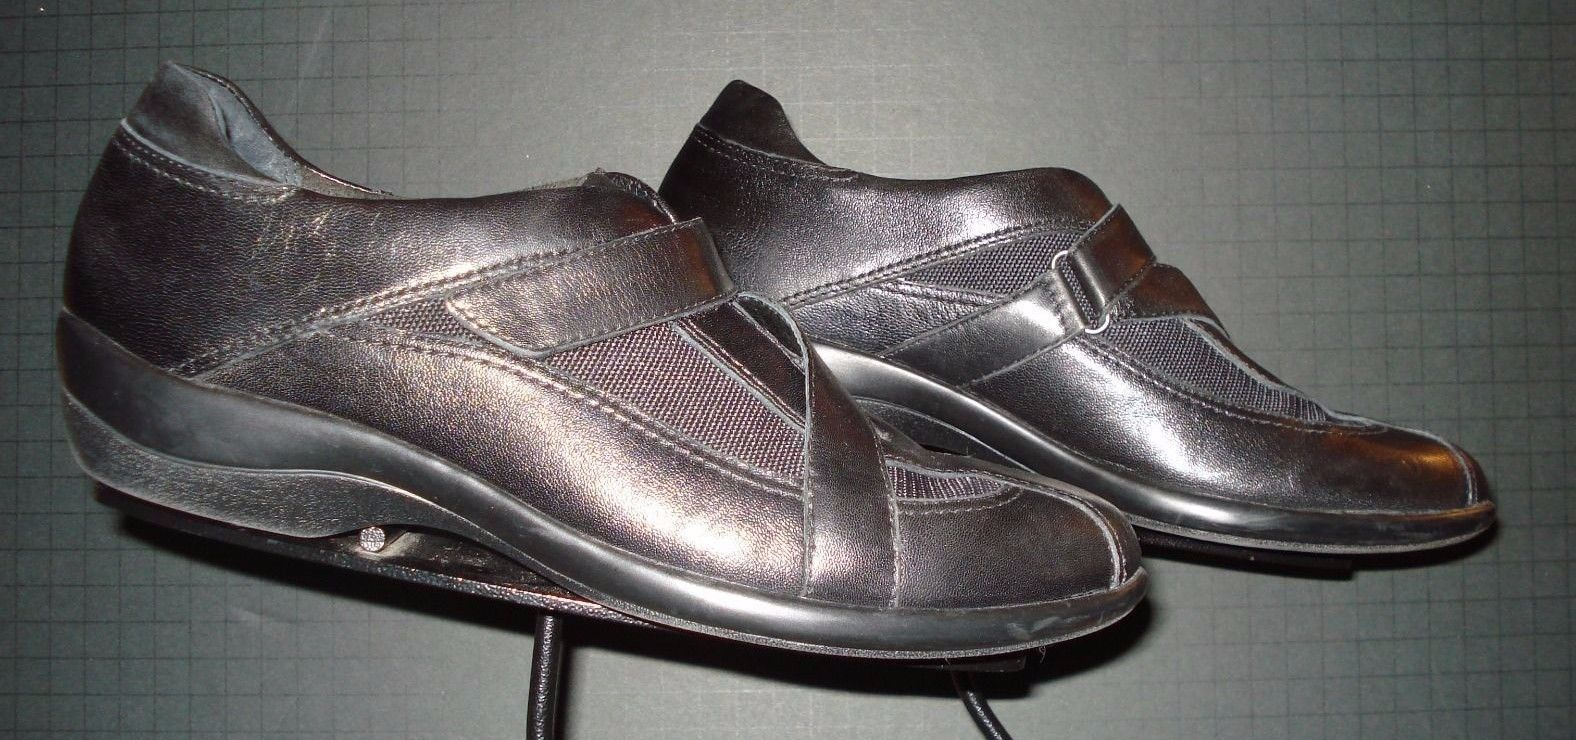 Clarks Everyday Black Leather Casual Cool Oxford Sz. 8N Excellent! - $36.52 CAD